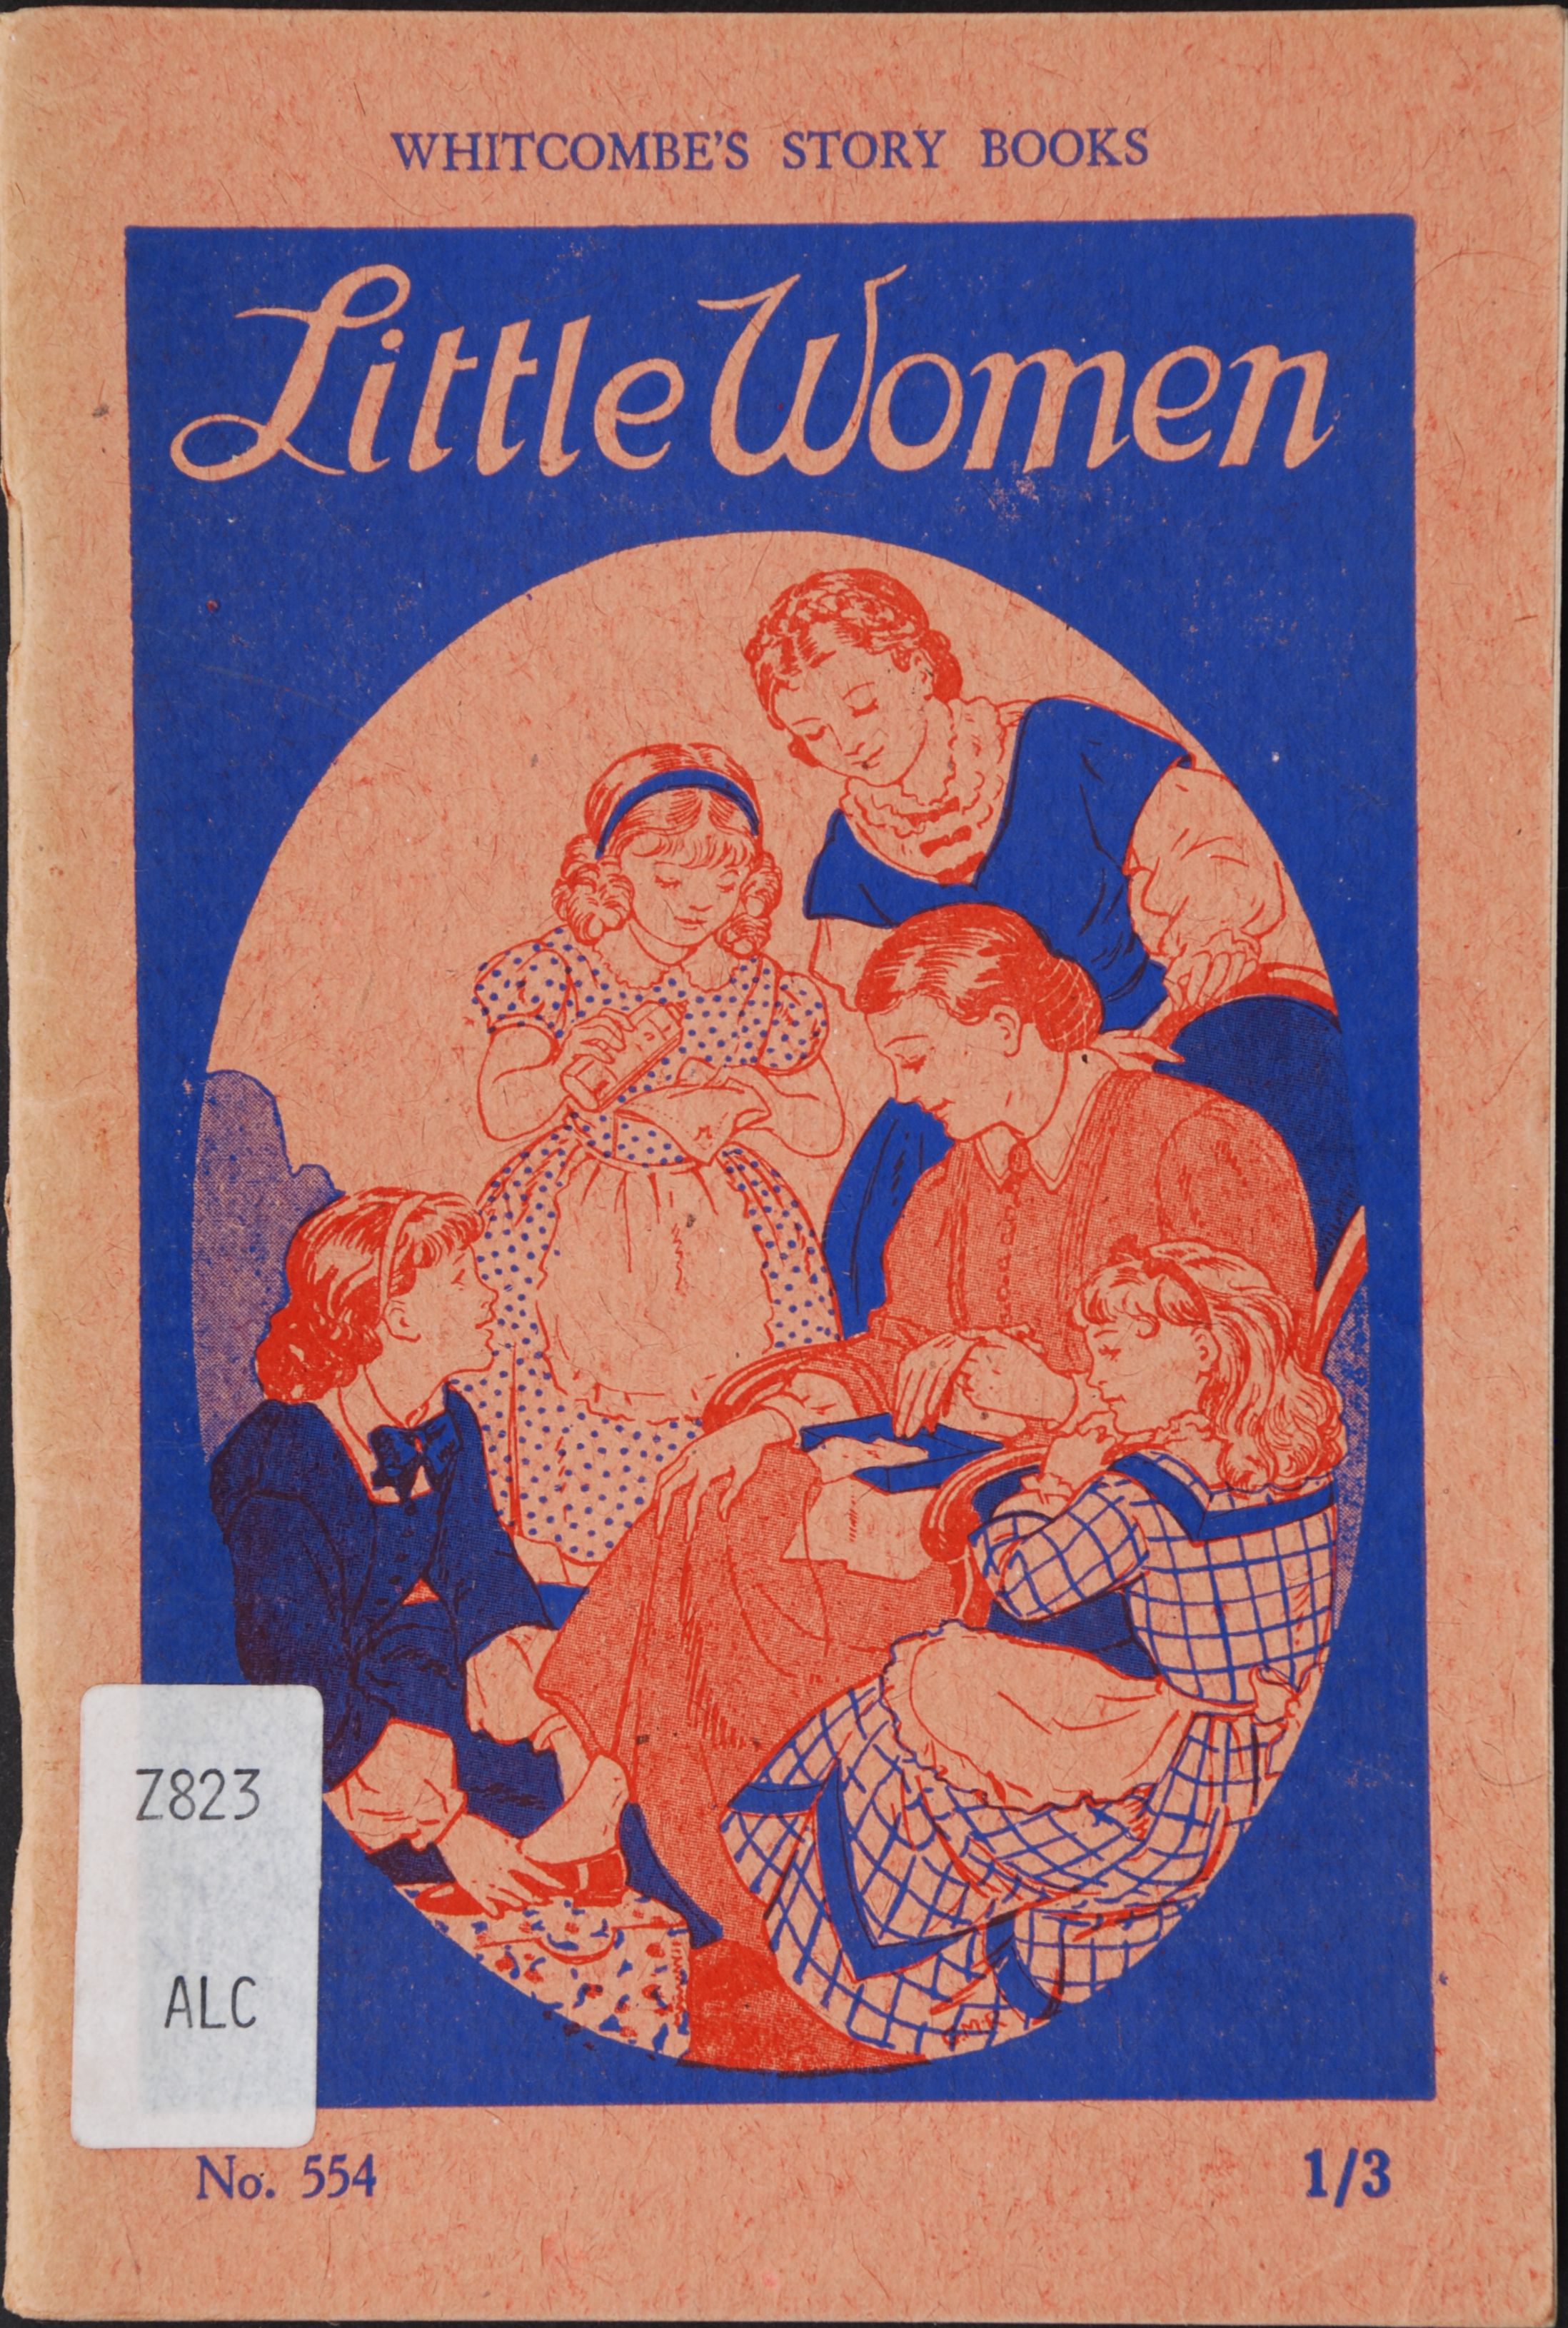 Little women; adapted from the story by Louisa M. Alcott. Christchurch, N.Z.: Whitcombe & Tombs [1948].